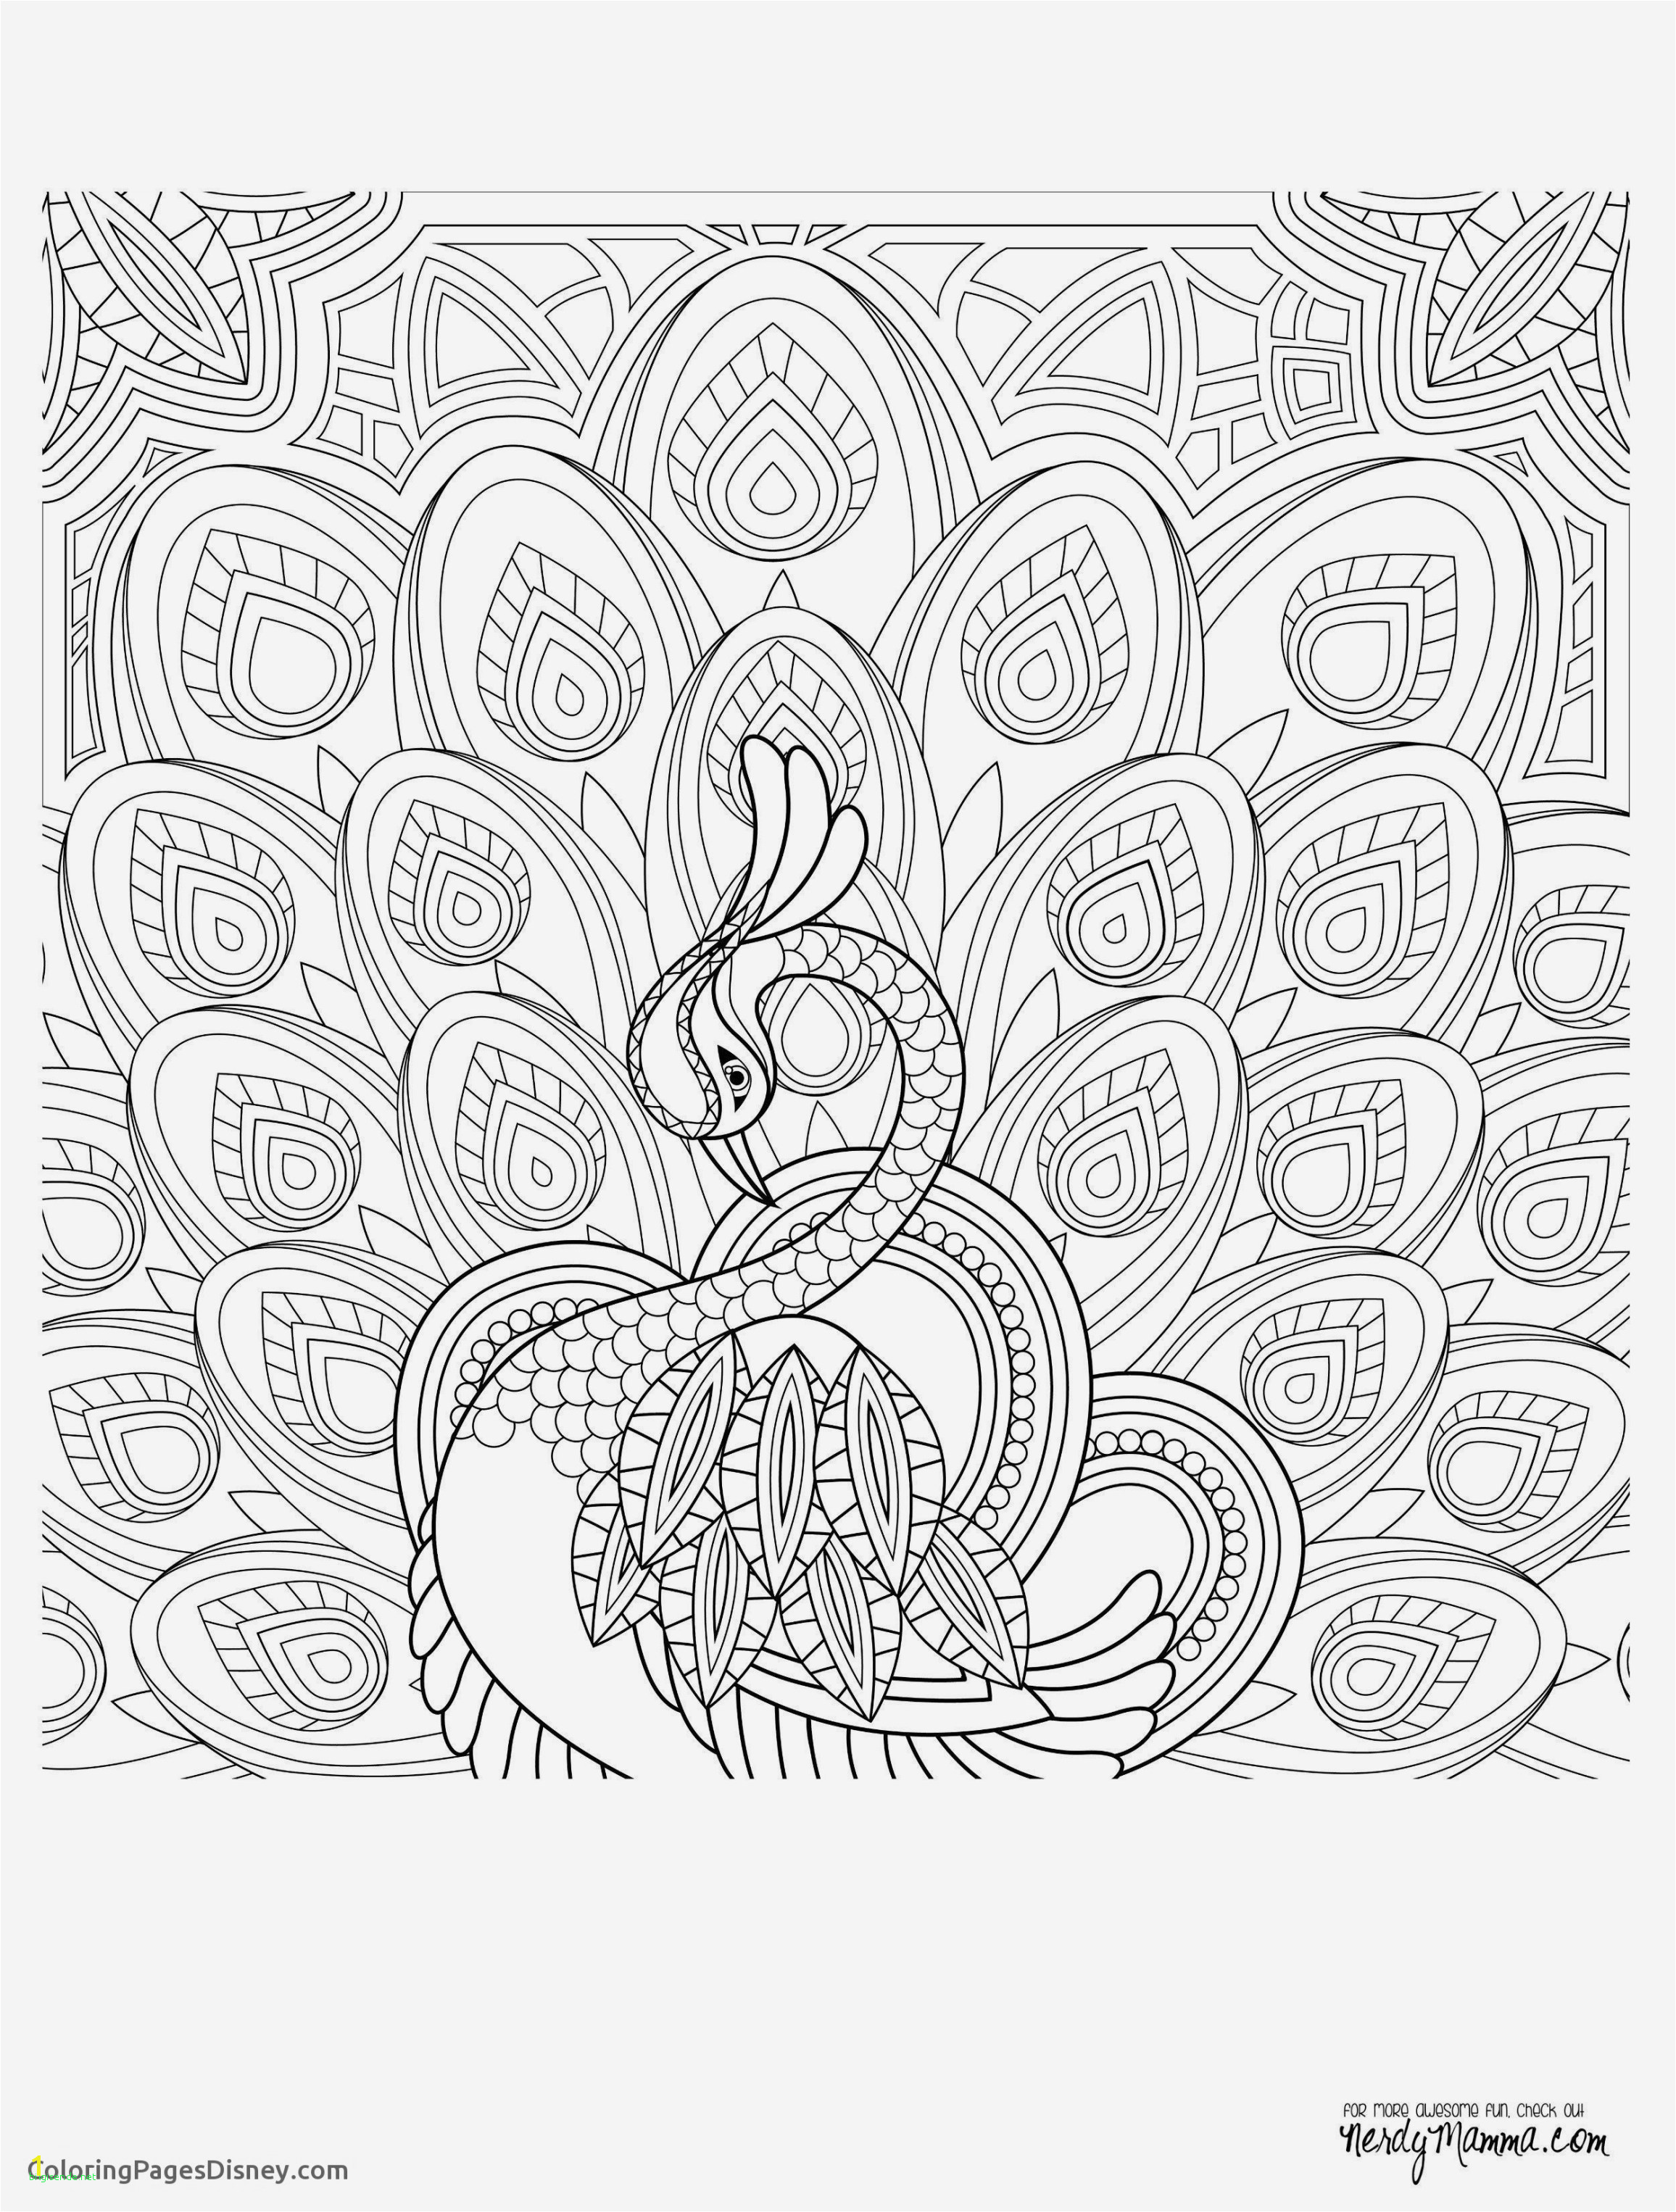 halloween coloring pages from disney beautiful printable home coloring pages best color sheet 0d modokom fun of halloween coloring pages from disney